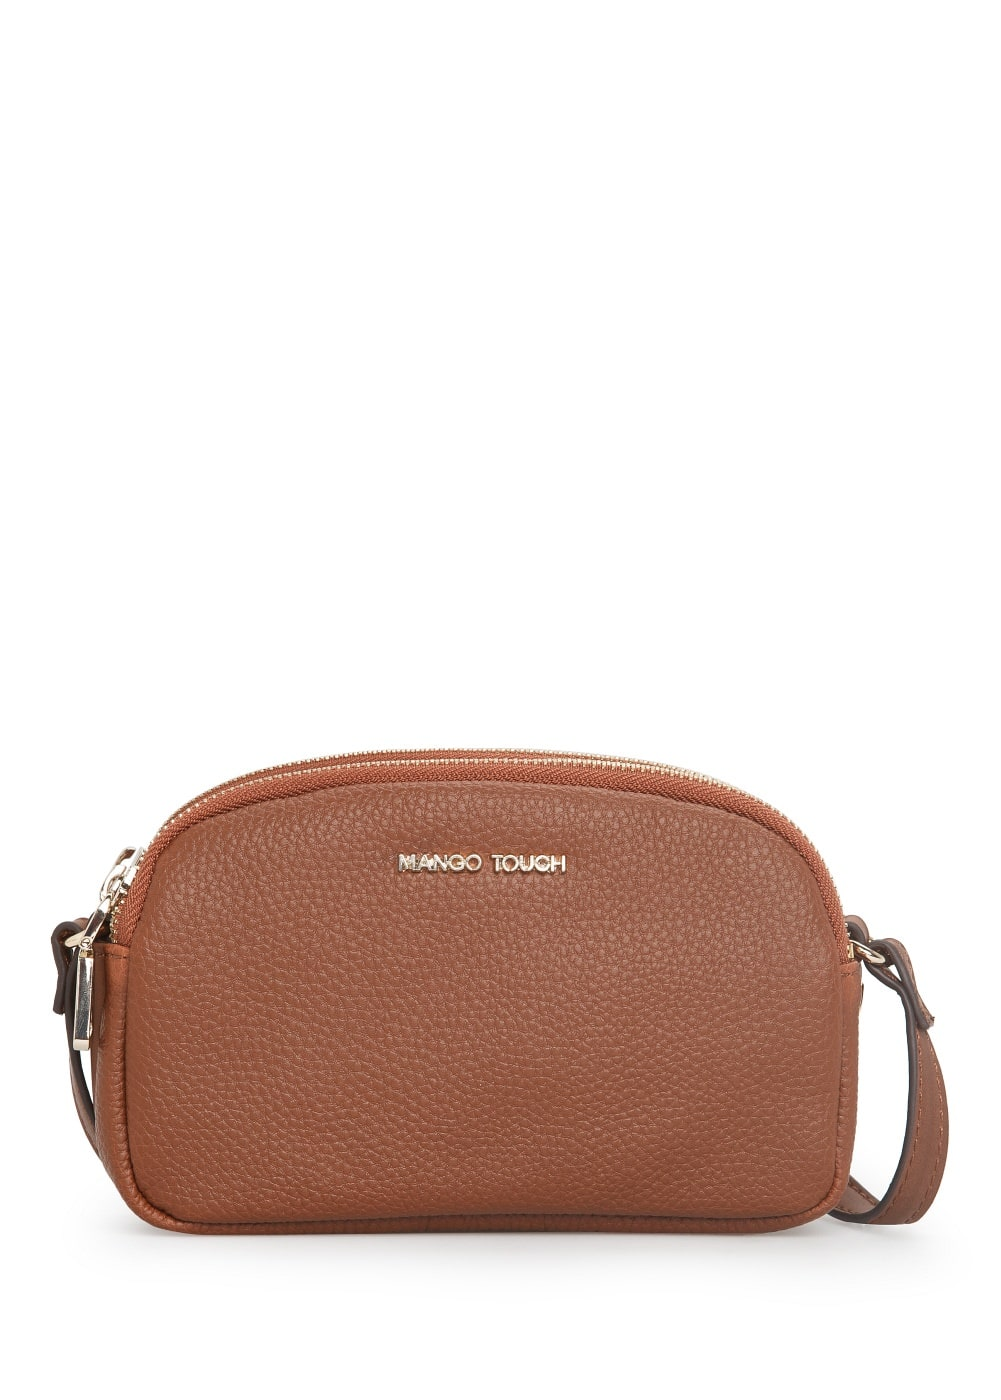 Double compartment mini bag | MANGO